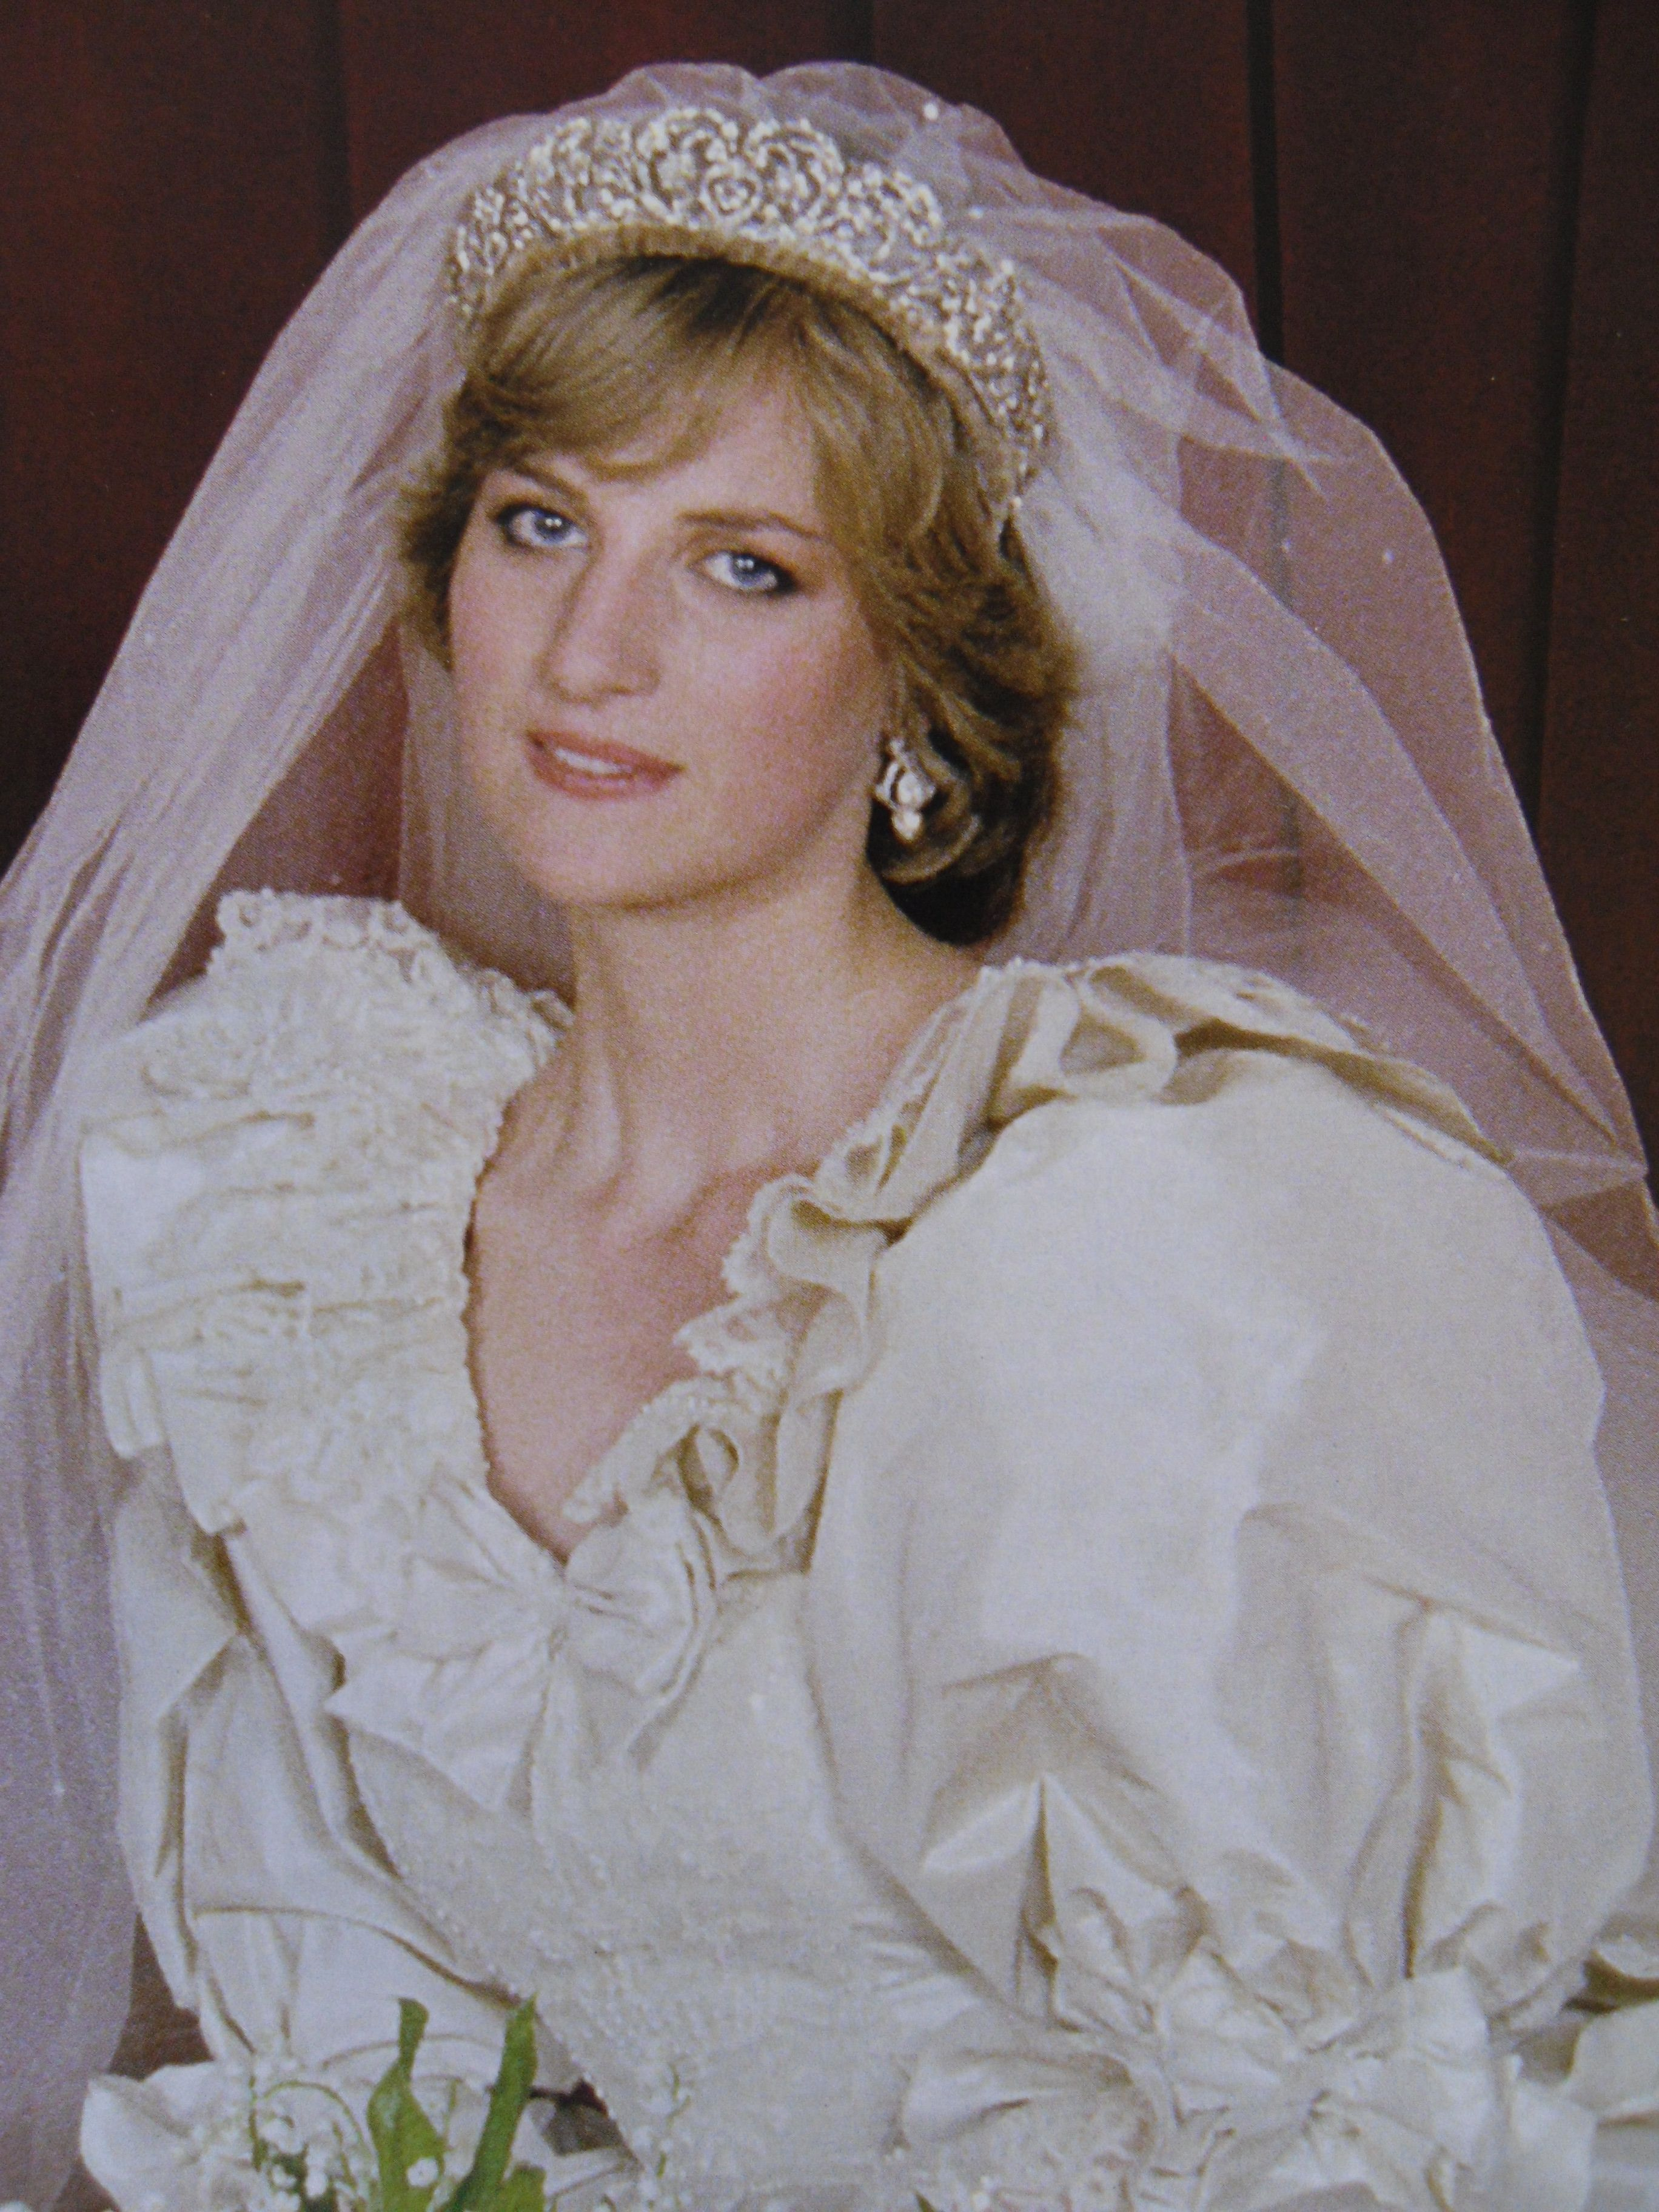 Princess Diana on her Wedding Day, 1981 Royal Wedding